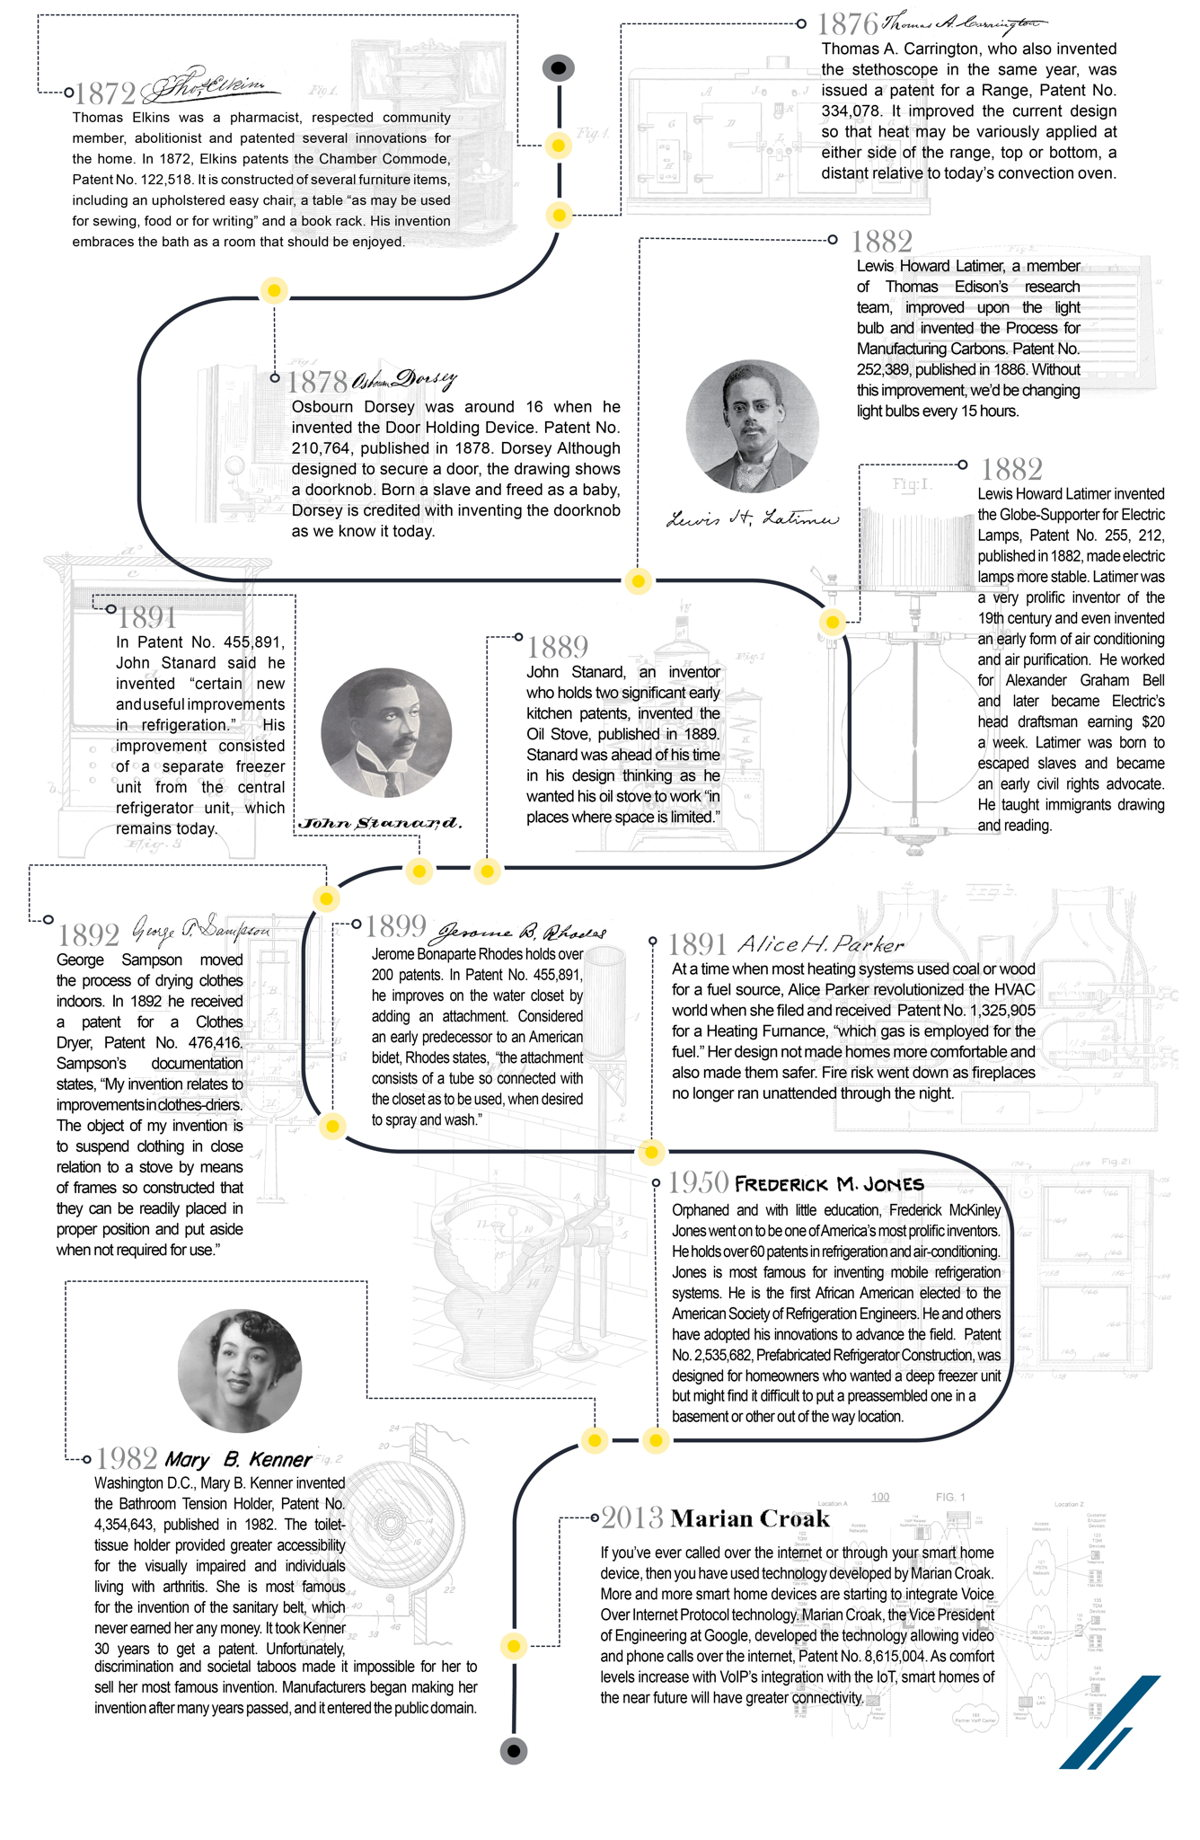 Infographic of Exemplary African American Innovations in the Kitchen and Bath Industry from the 1800s through today